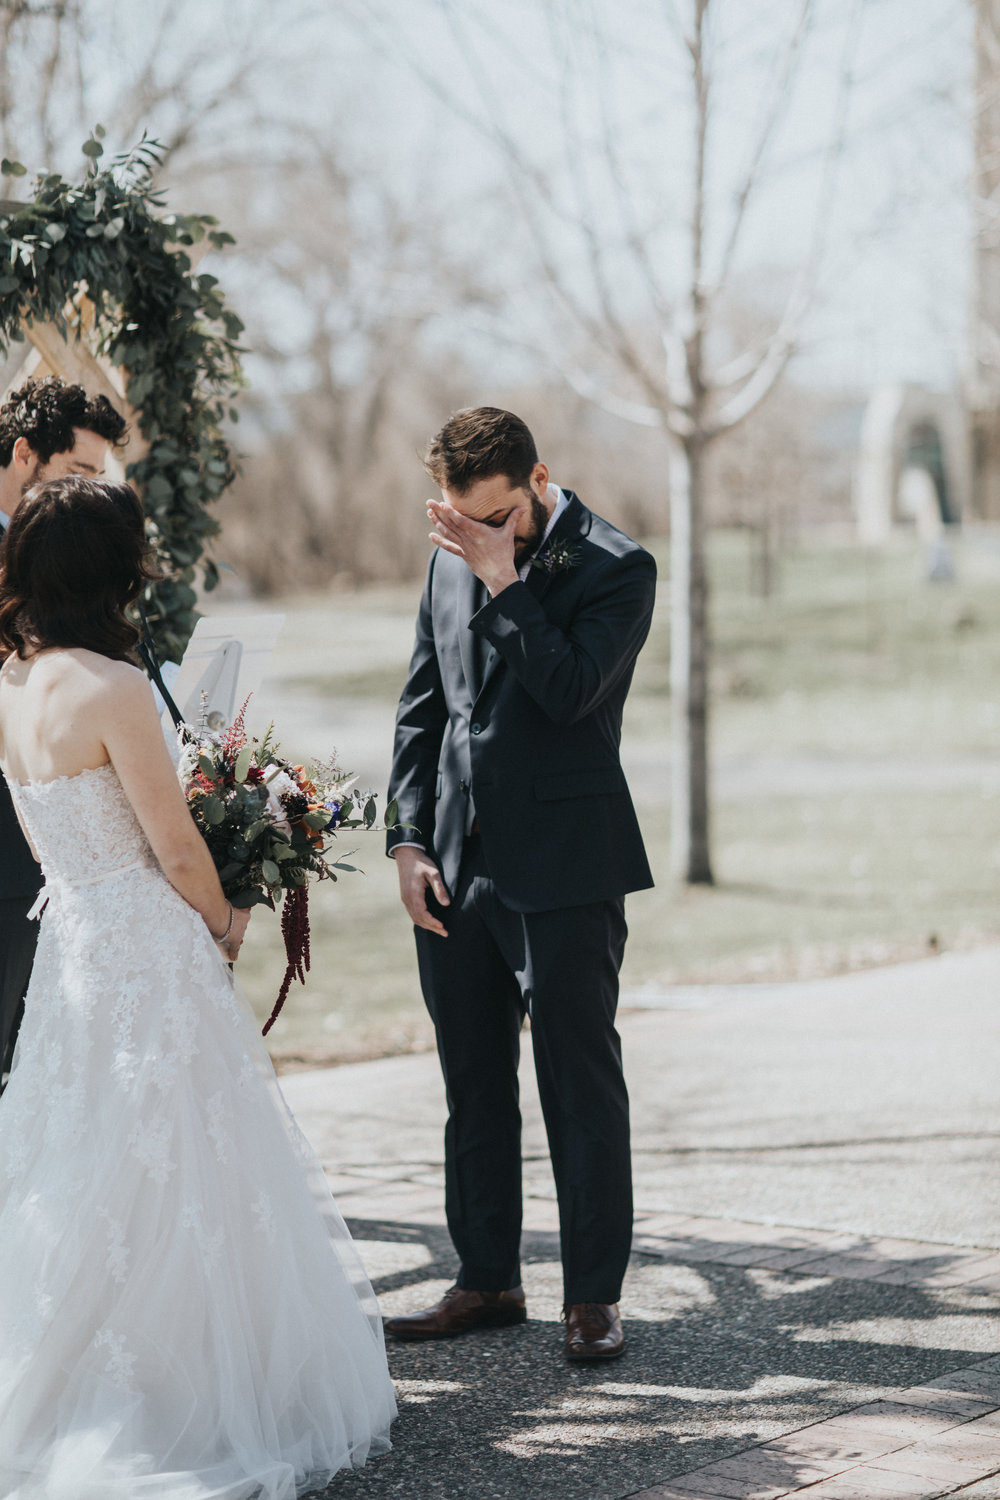 groom emotional during non-religious ceremony, Russell Heeter Photography :: Minneapolis wedding planner Sixpence Events :: Nicollet Island Pavilion :: april wedding in Minnesota.jpg